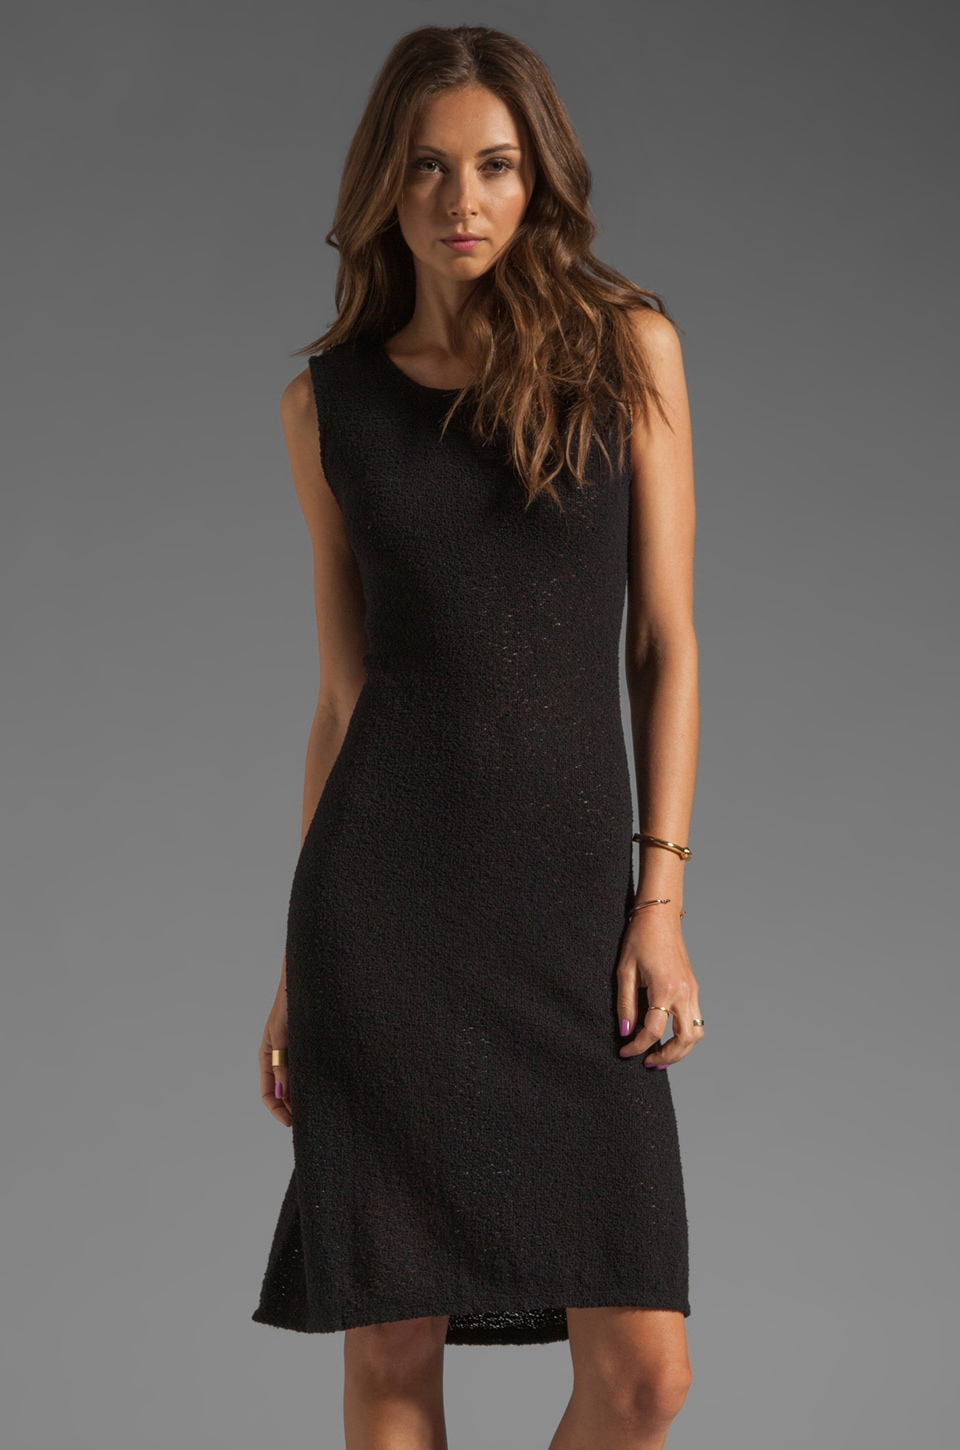 See By Chloe Short Sleeve Boatneck Dress in Black